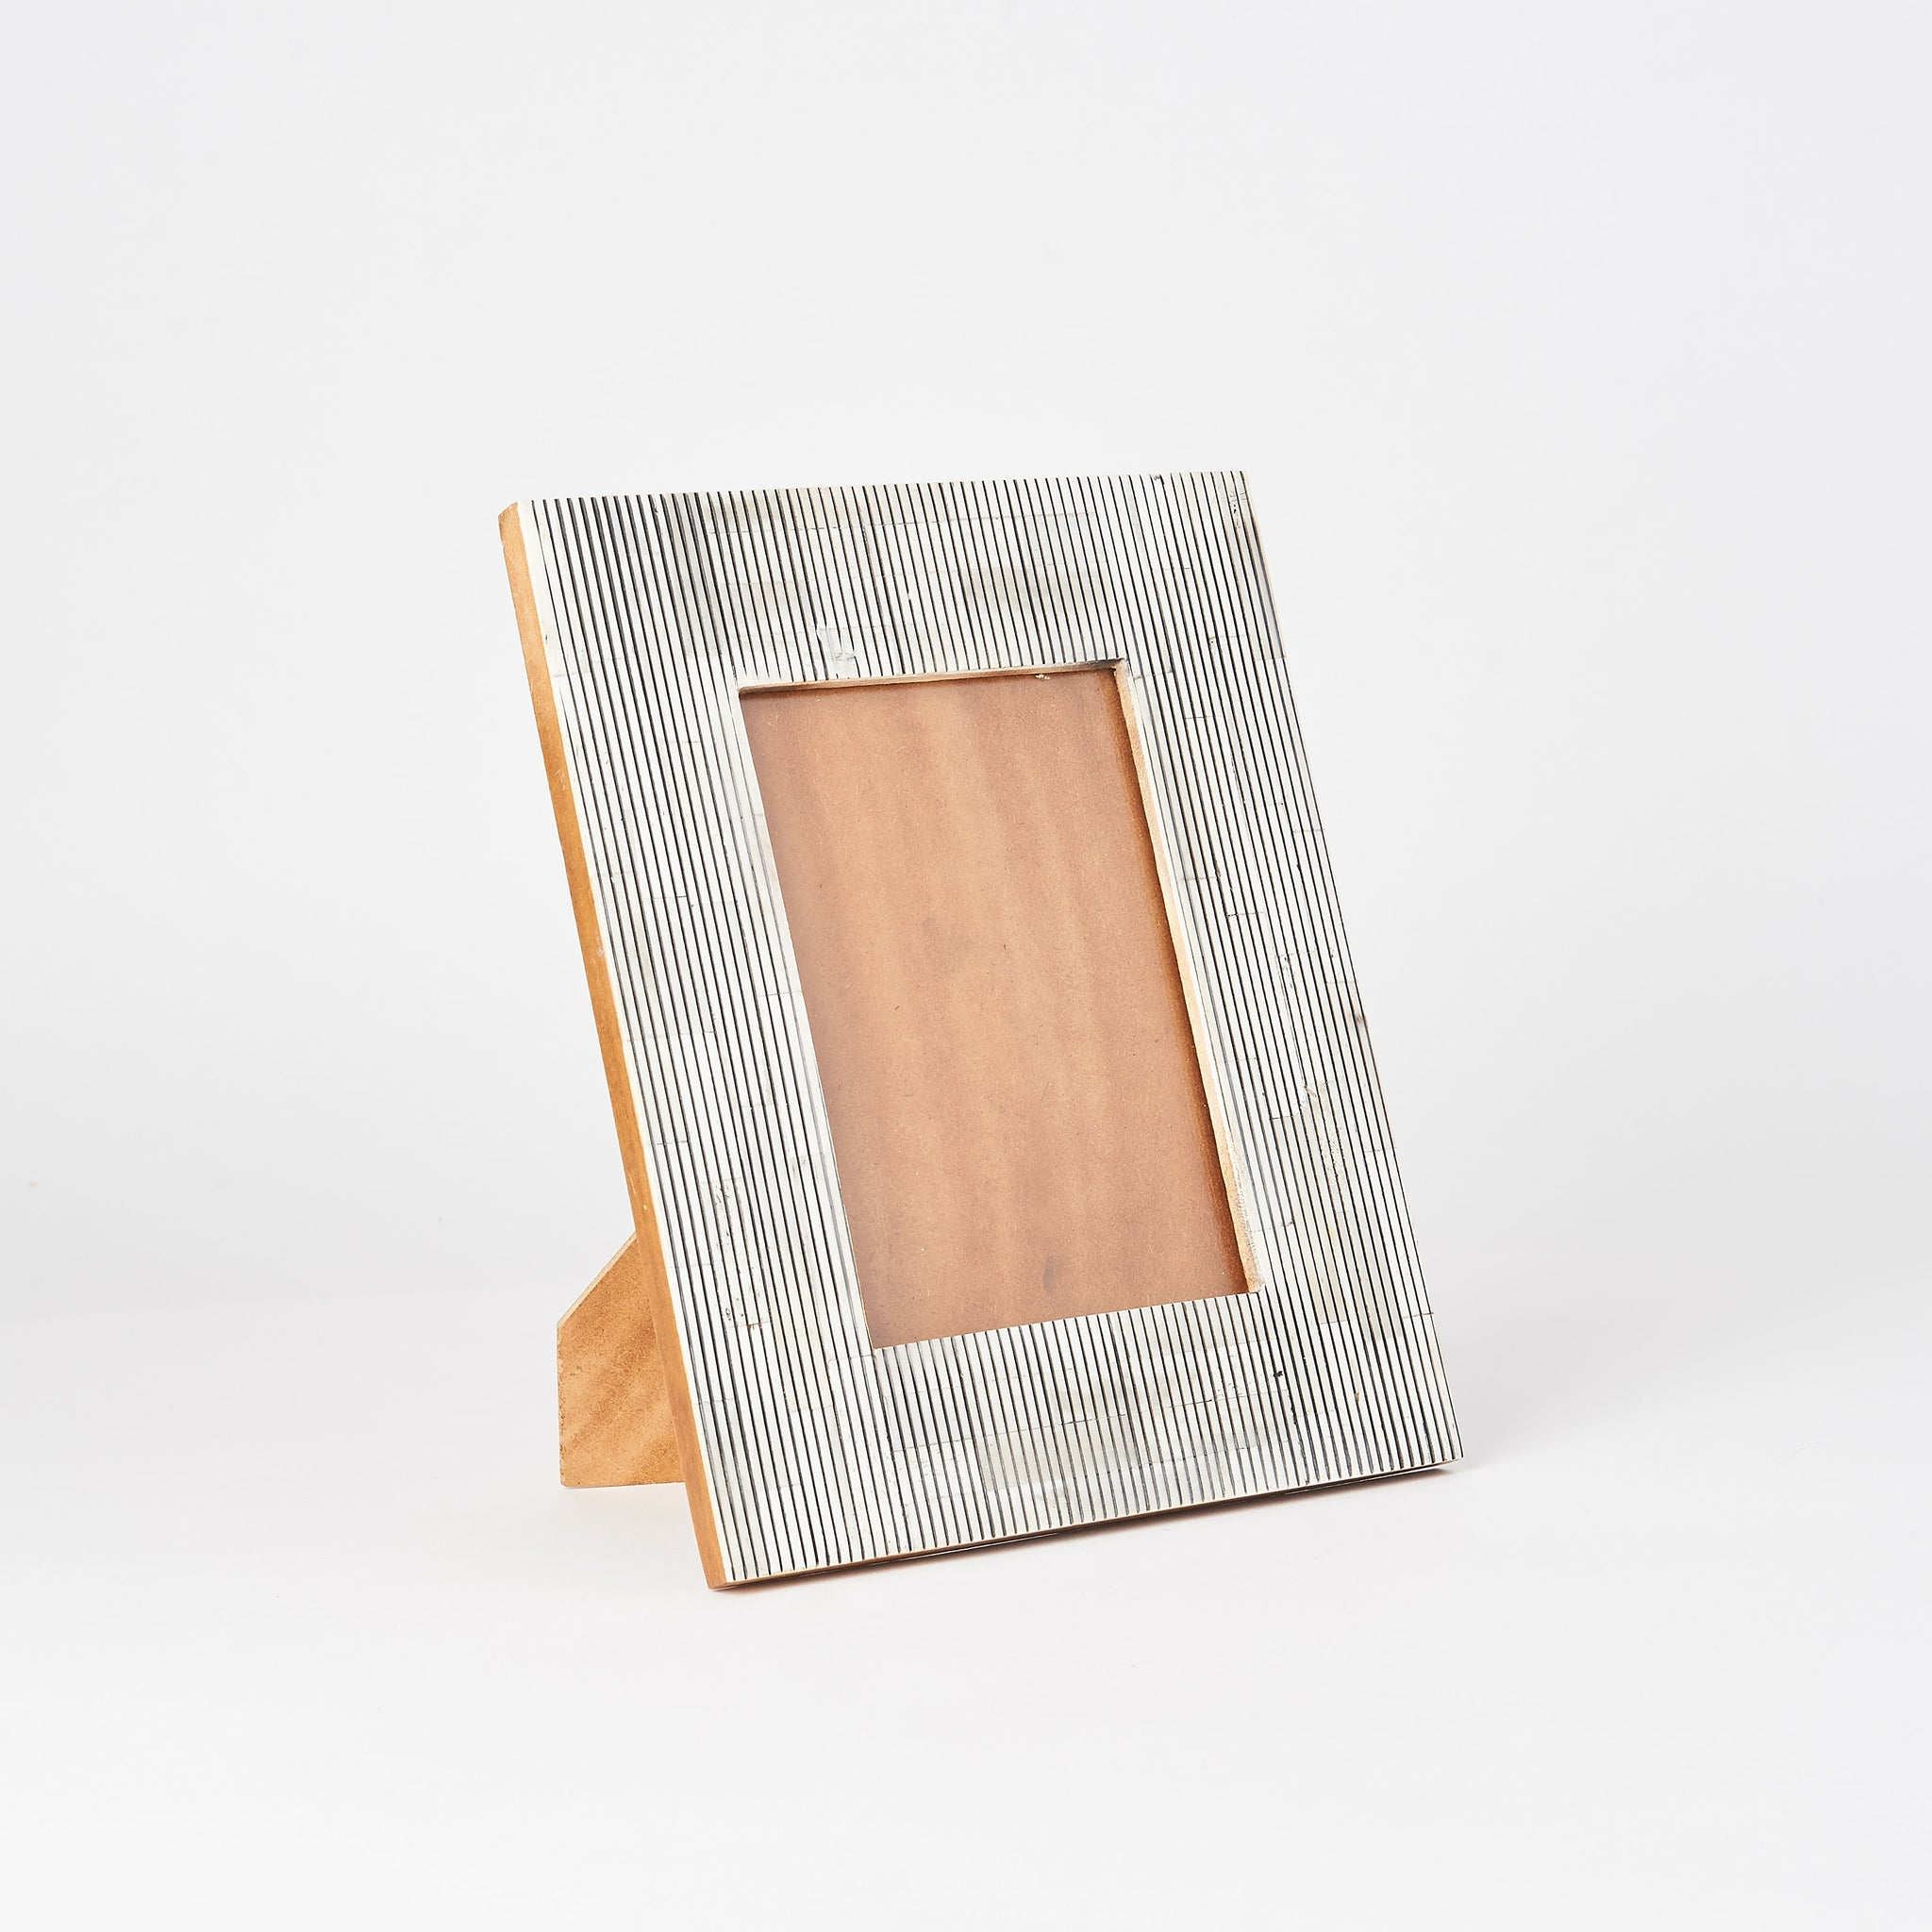 Pinstriped Photo Frame